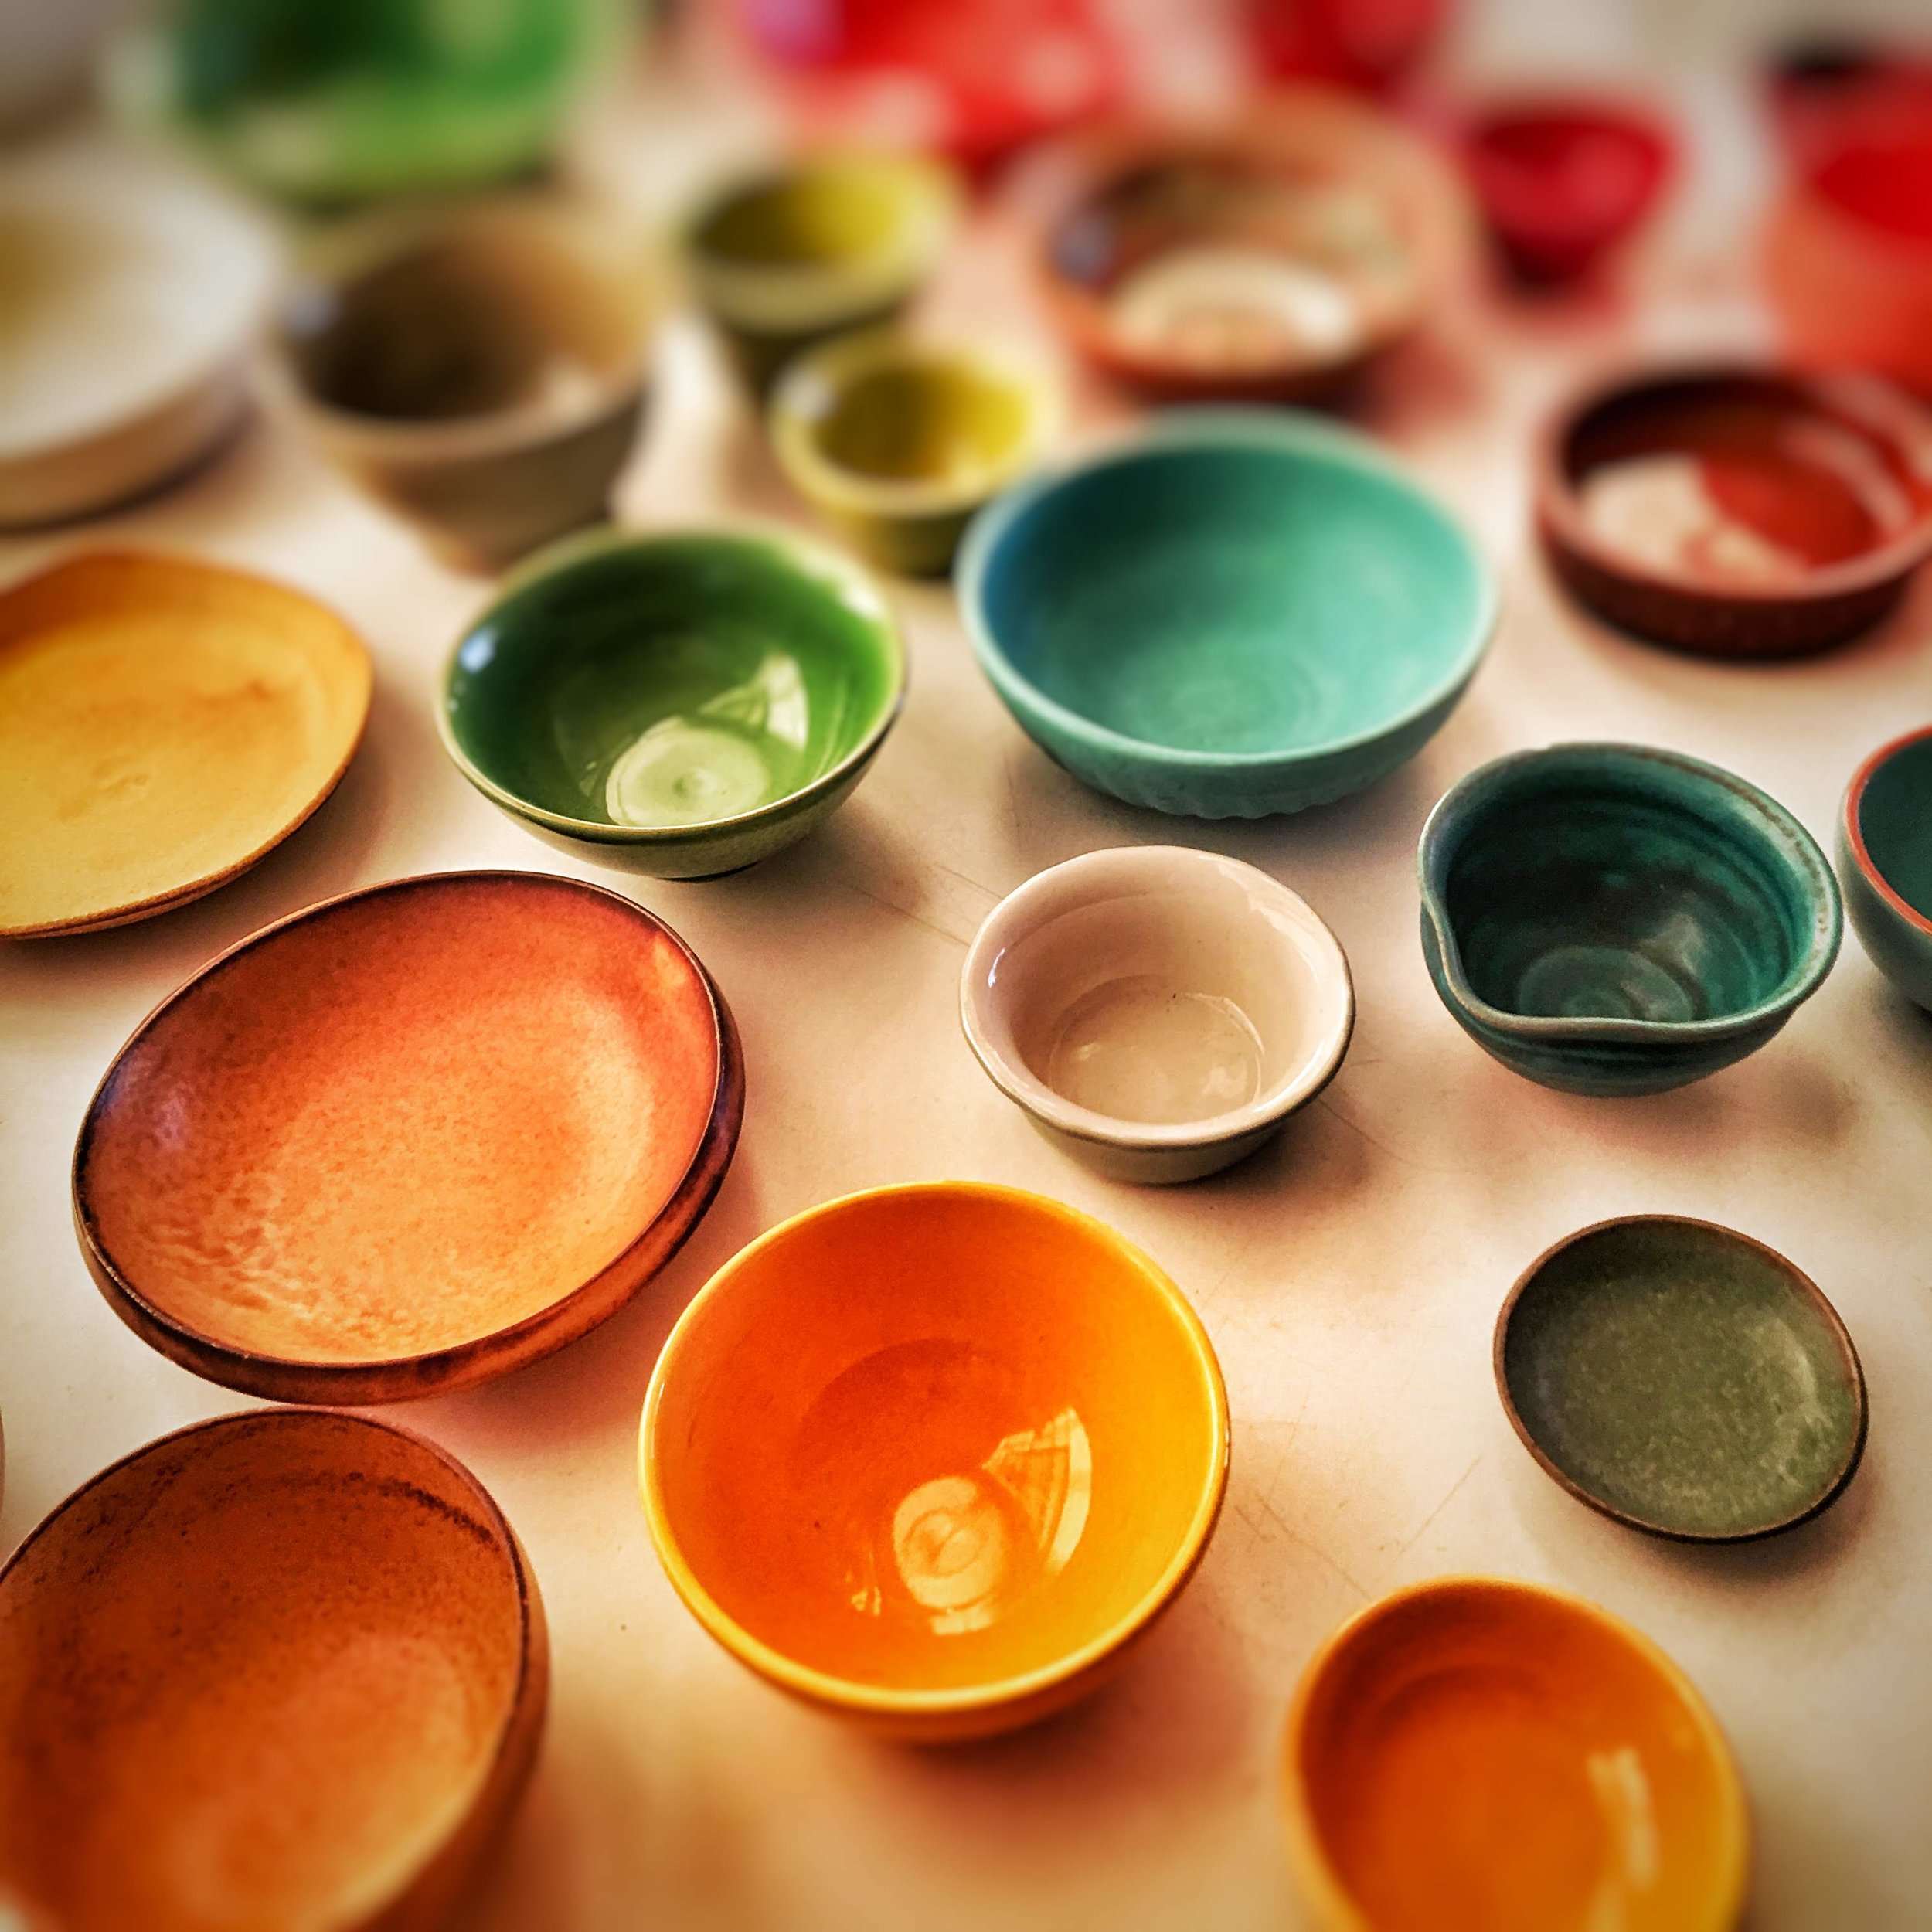 02_colored_bowls.JPG